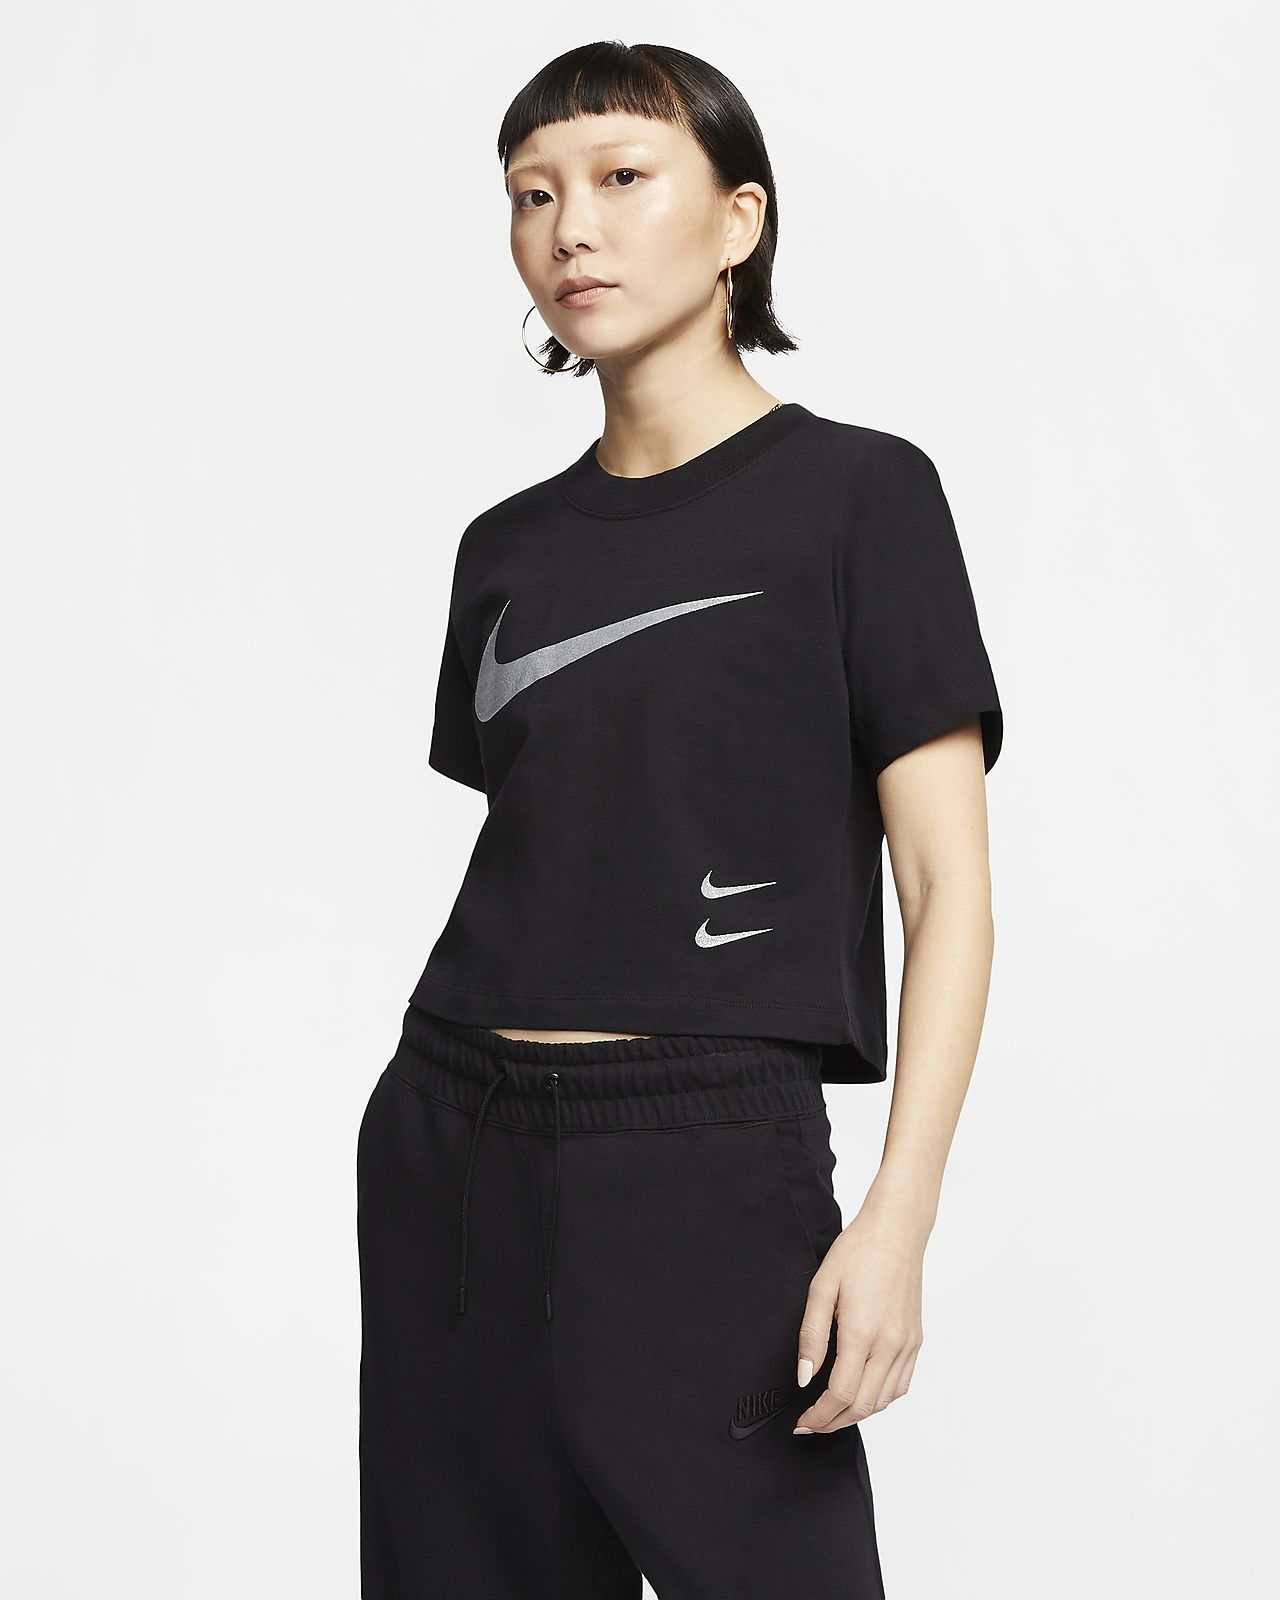 Nike Women's Short-Sleeve Swoosh Top